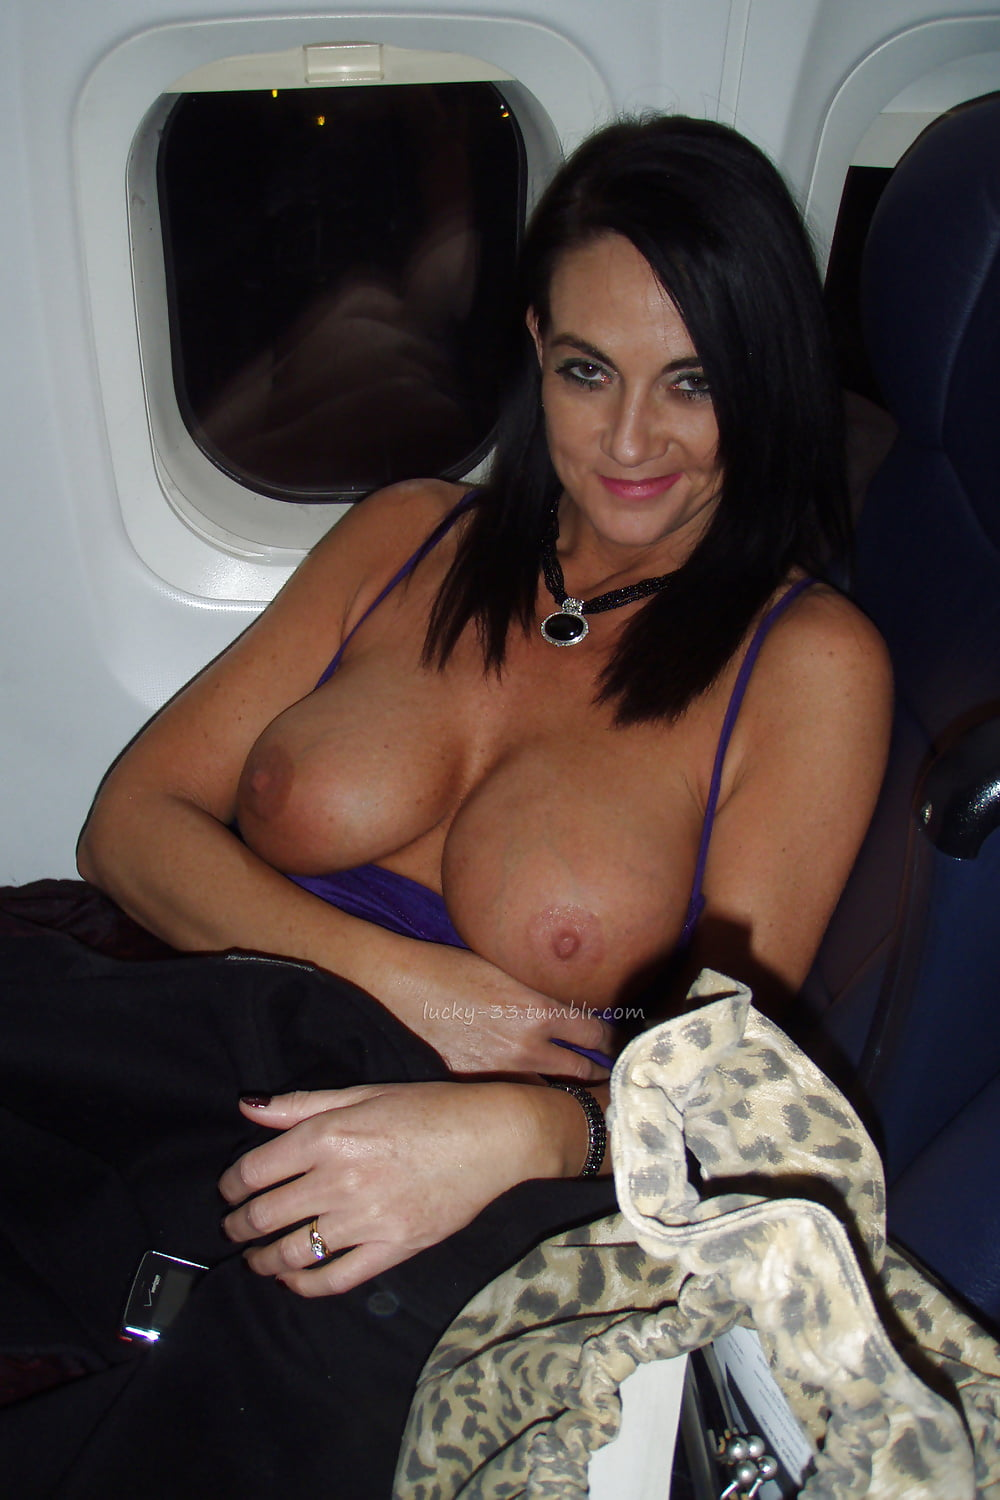 Flashing nude pictures on a plane 1